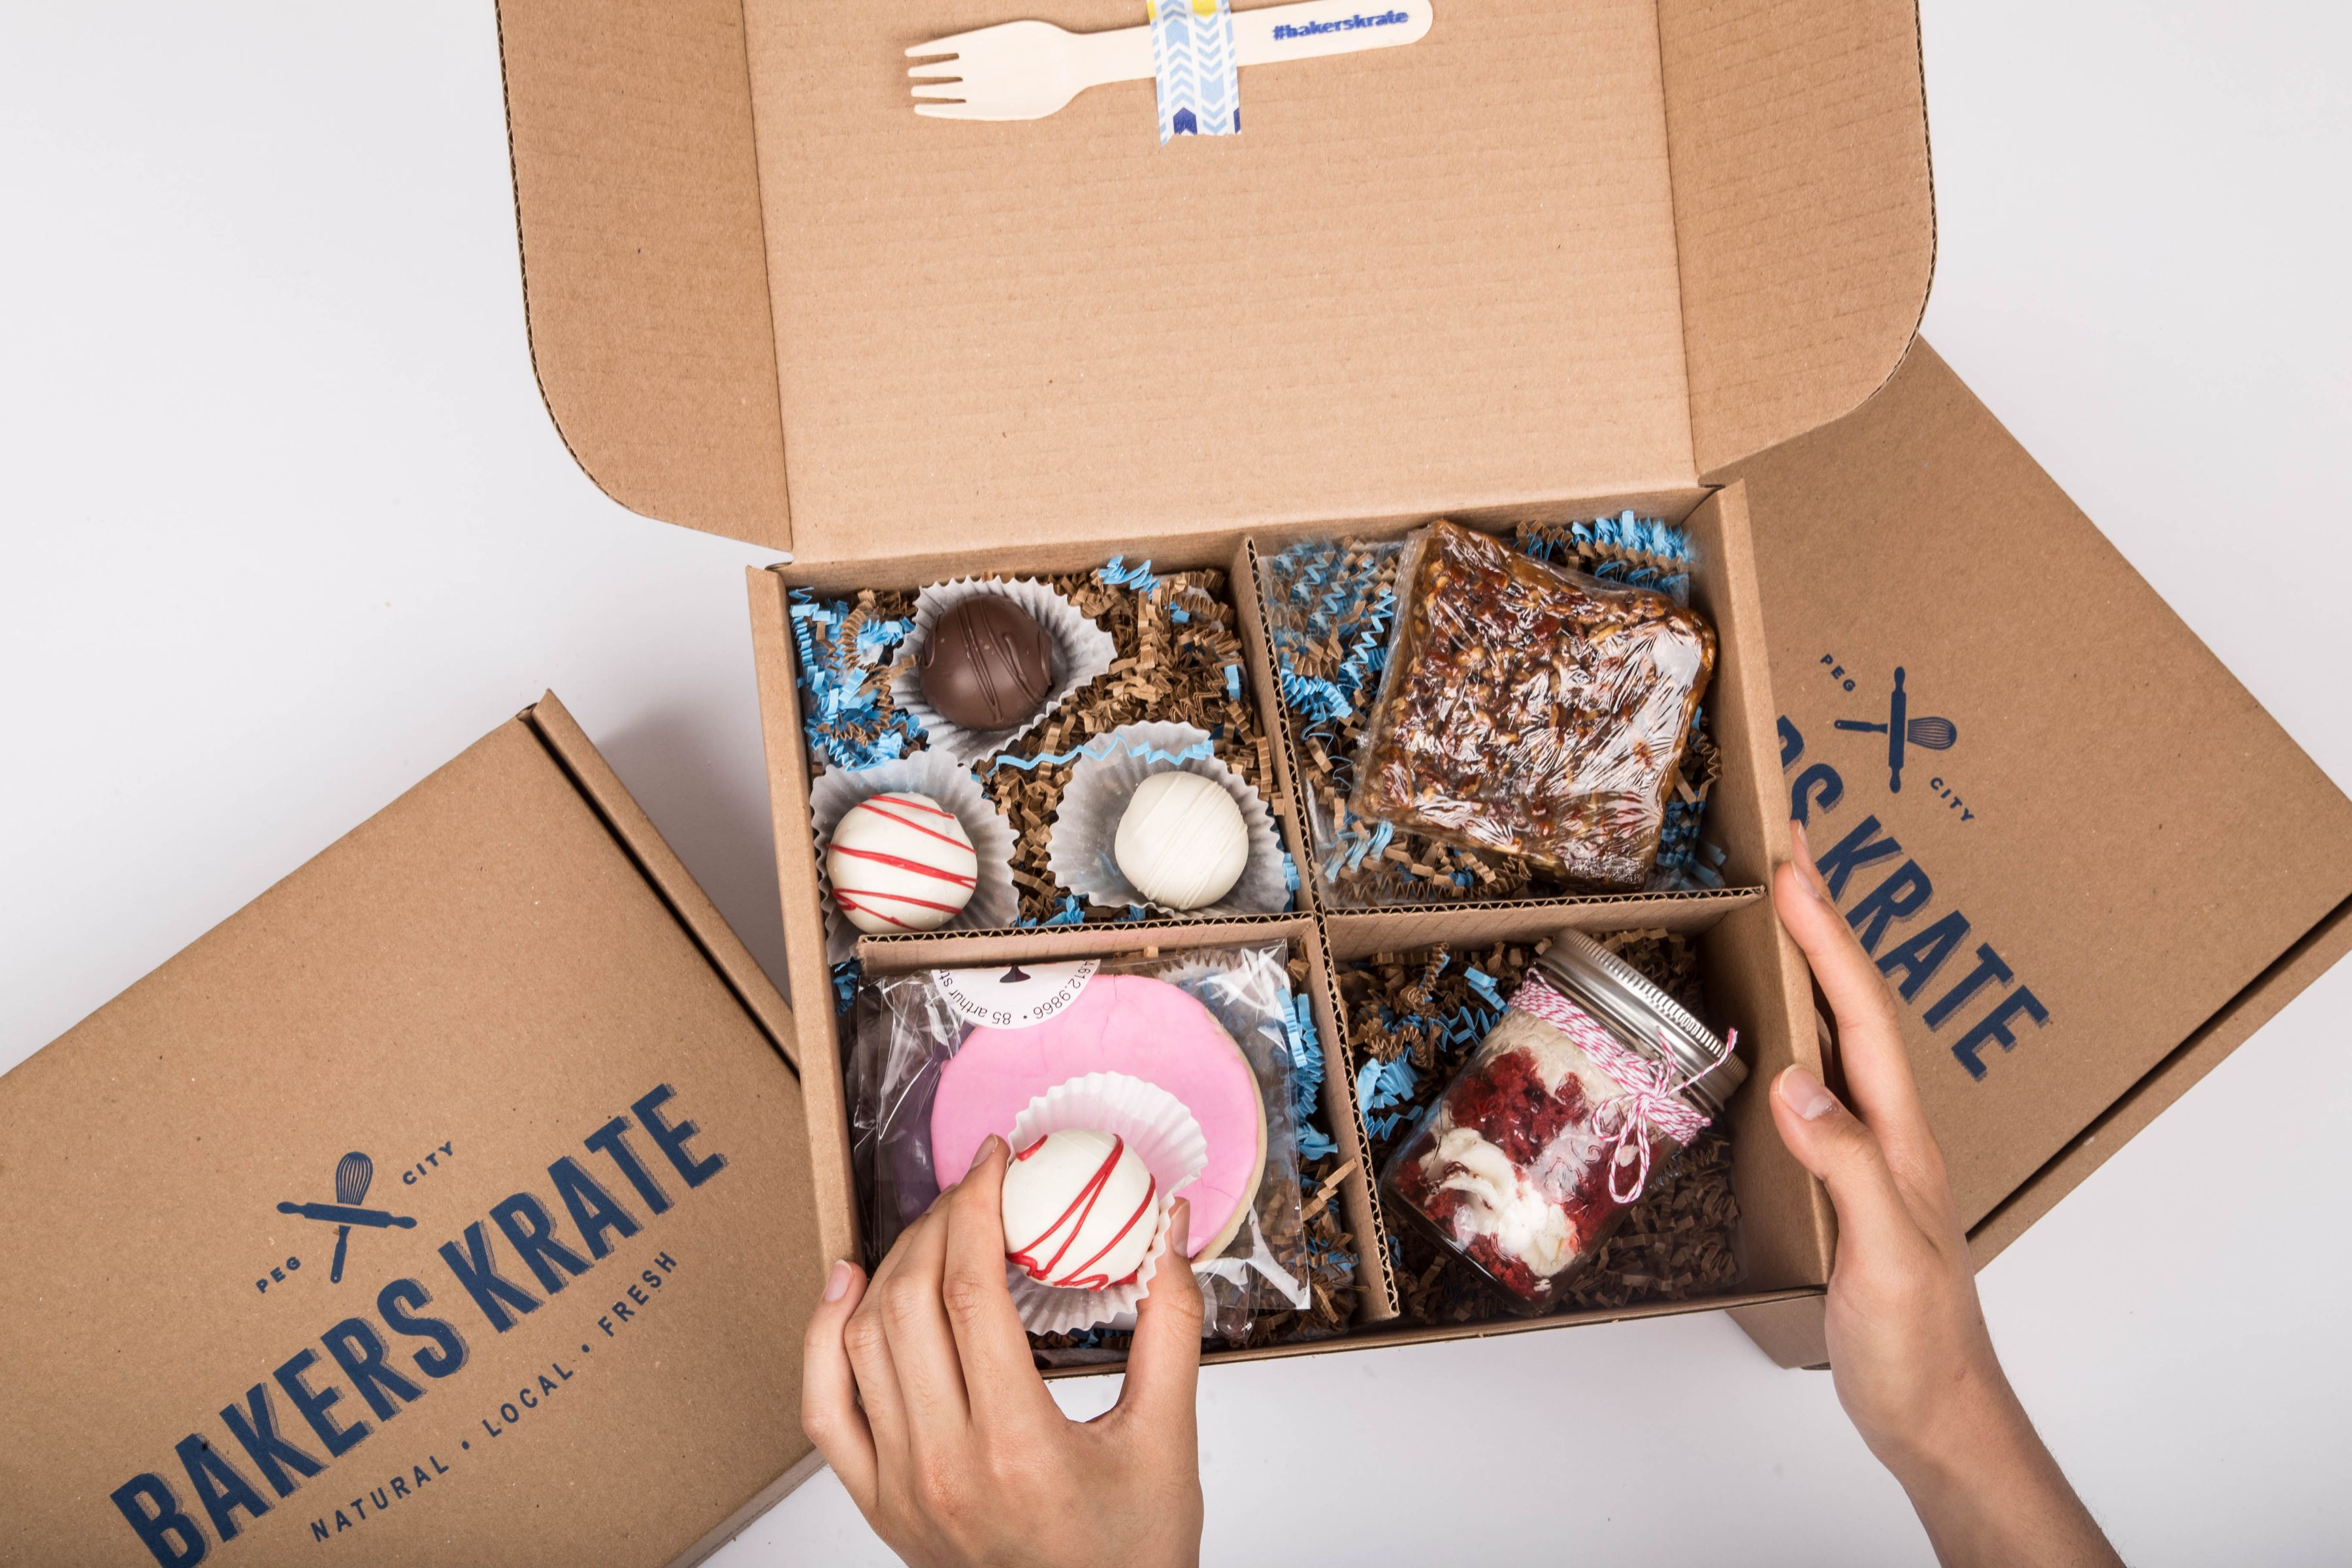 Bakers krate cratejoy subscription box marketplace